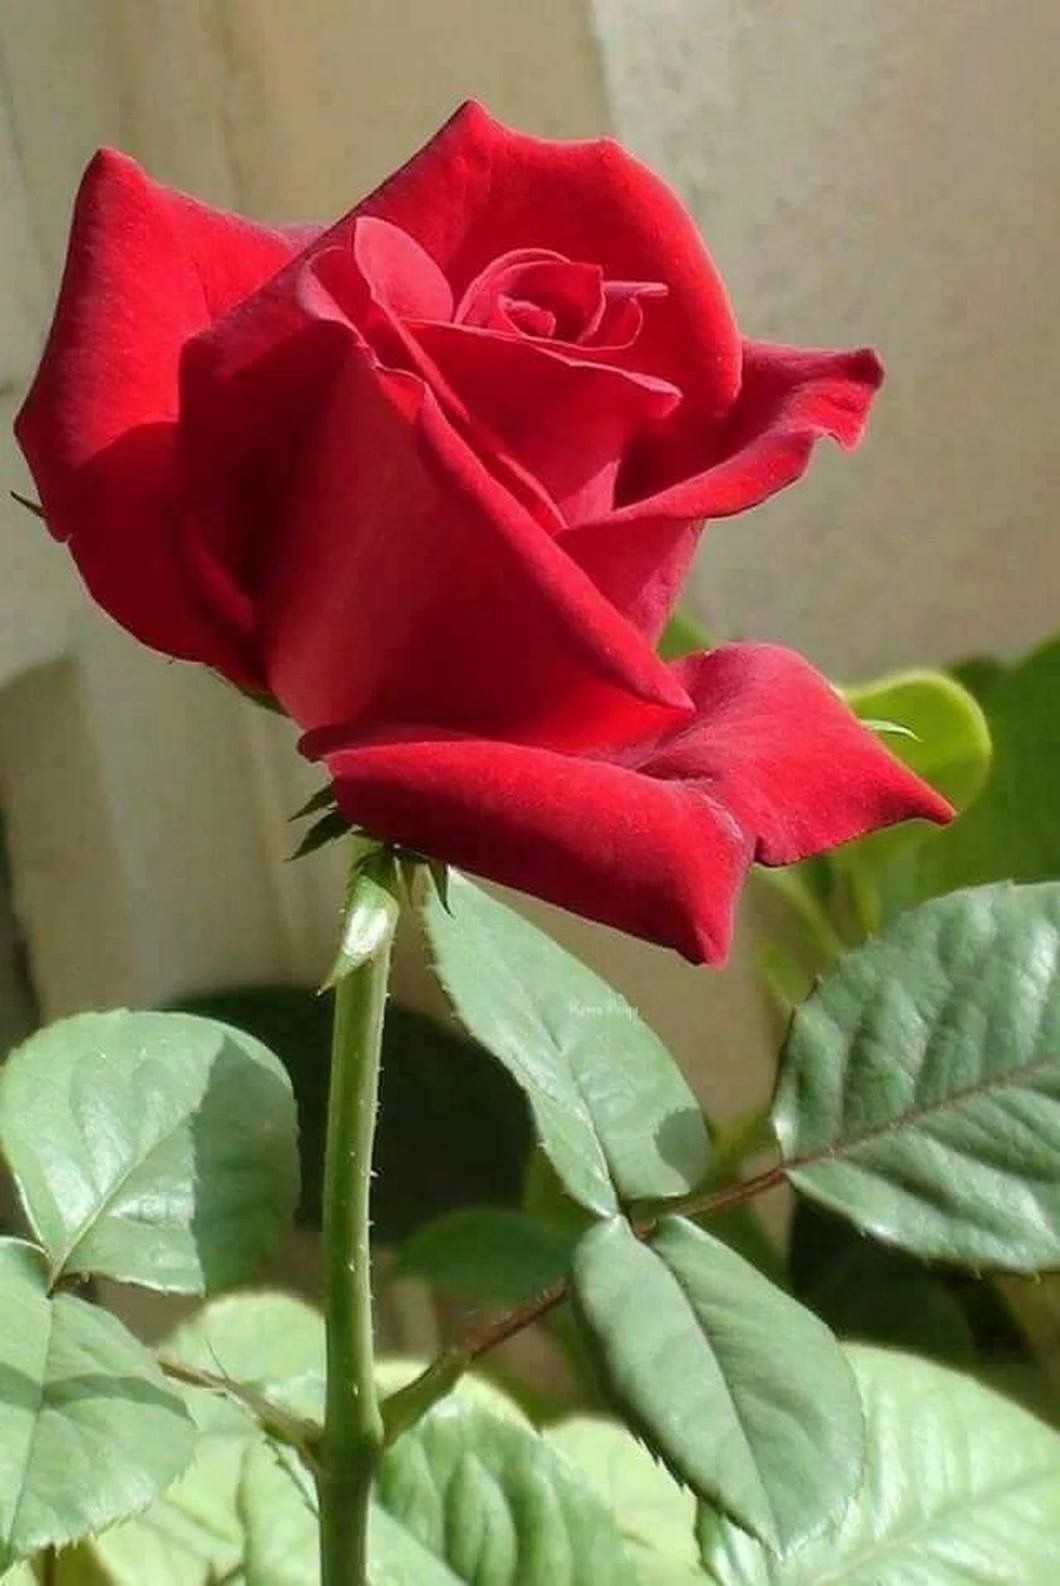 Pin by heartwhispers on roses are red pinterest beautiful red roses rose flowers garden roses flower photos beautiful flowers glitter garden paths change pretty pictures izmirmasajfo